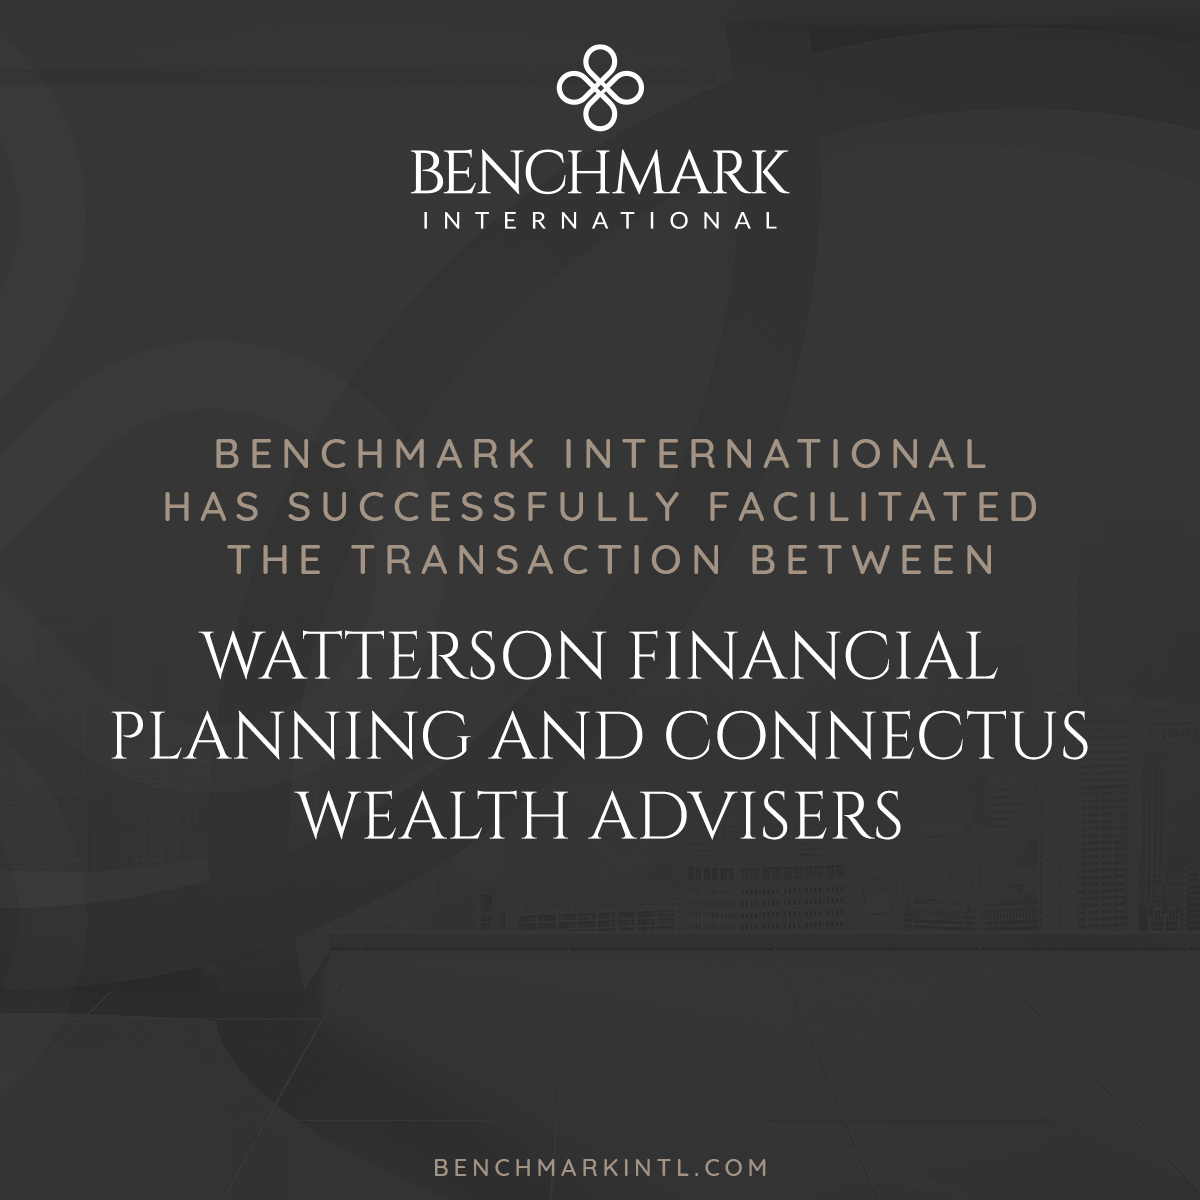 Watterson Financial Planning acquired by Connectus Wealth Advisers